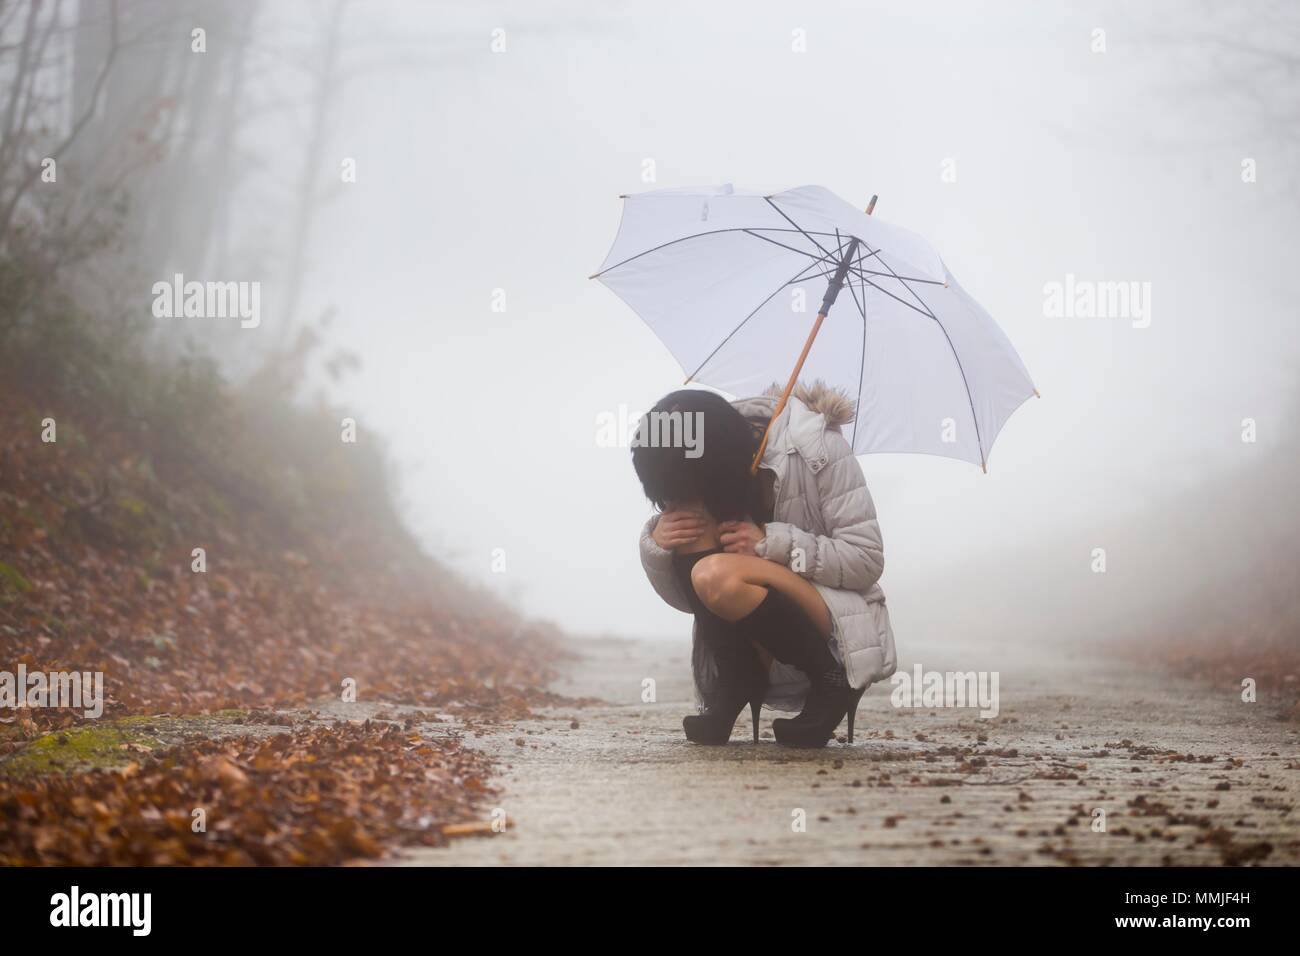 Young 20s woman desperate hiding eyes lost in fog umbrella in hand limited visibility on country road - Stock Image